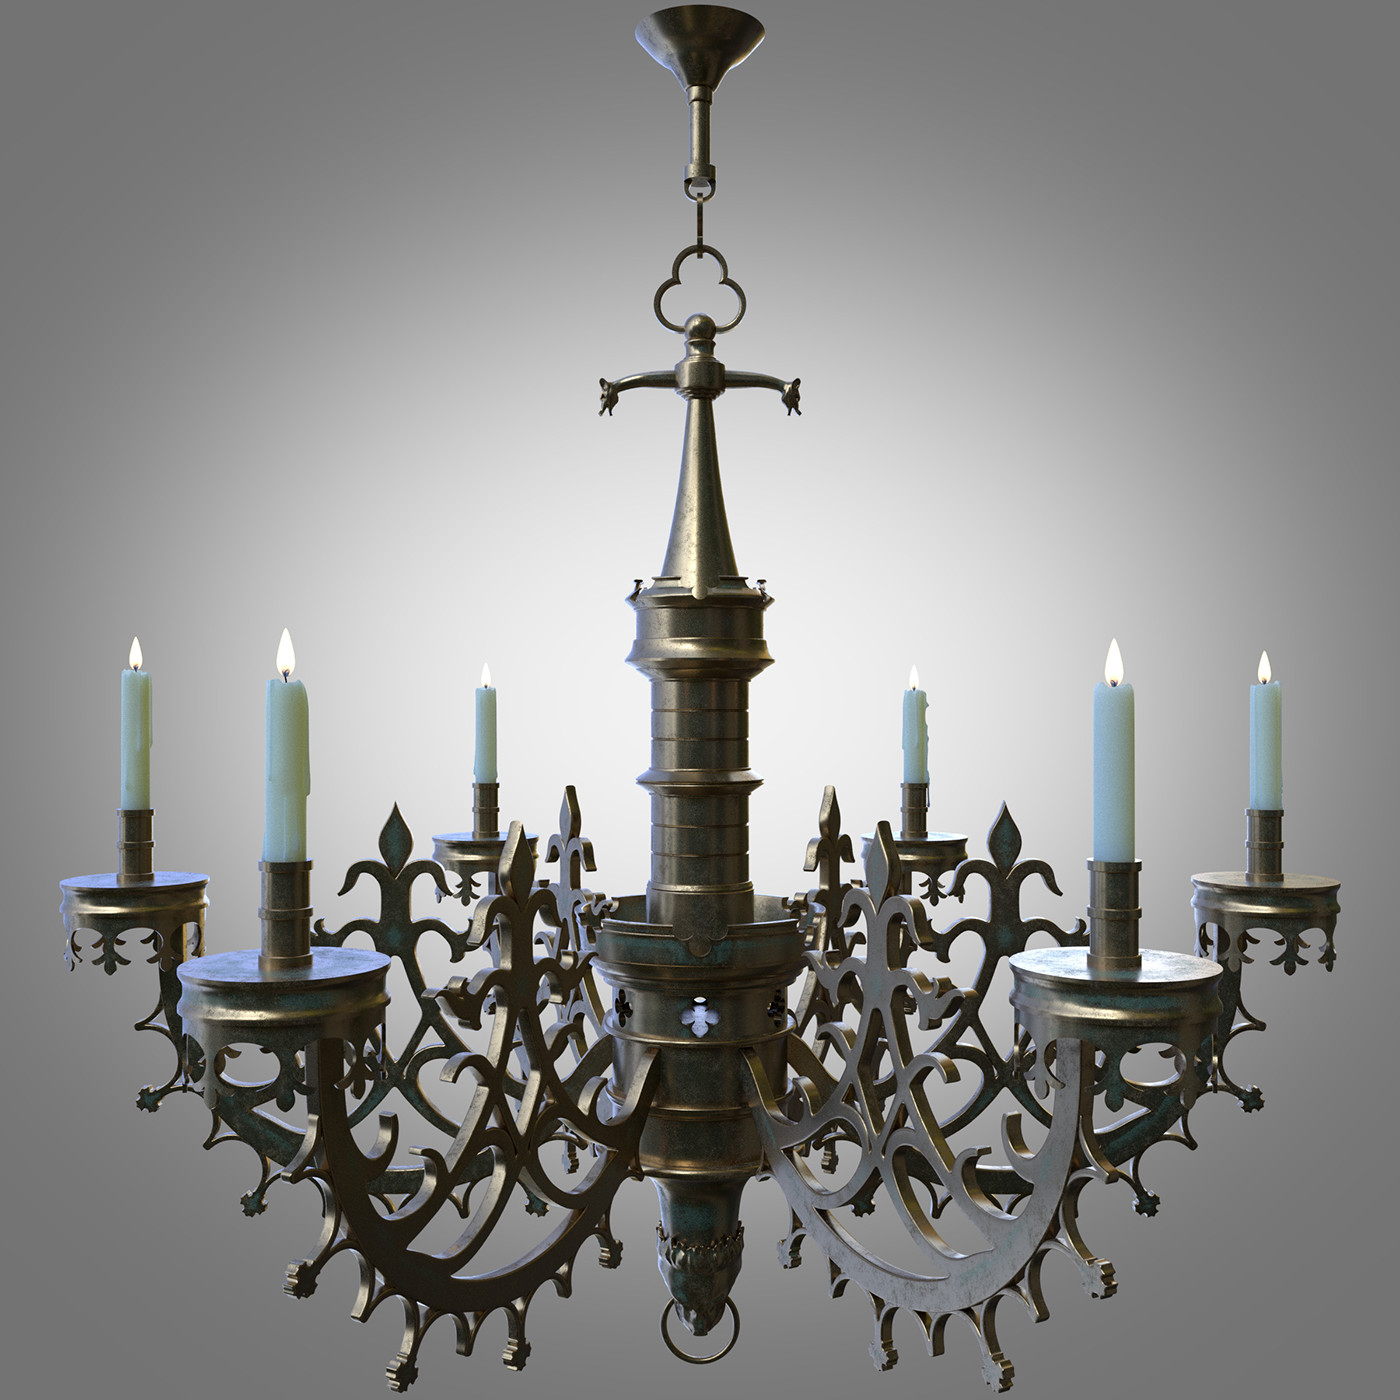 Arnolfini chandelier 3d model on behance arnolfini chandelier 3d model aloadofball